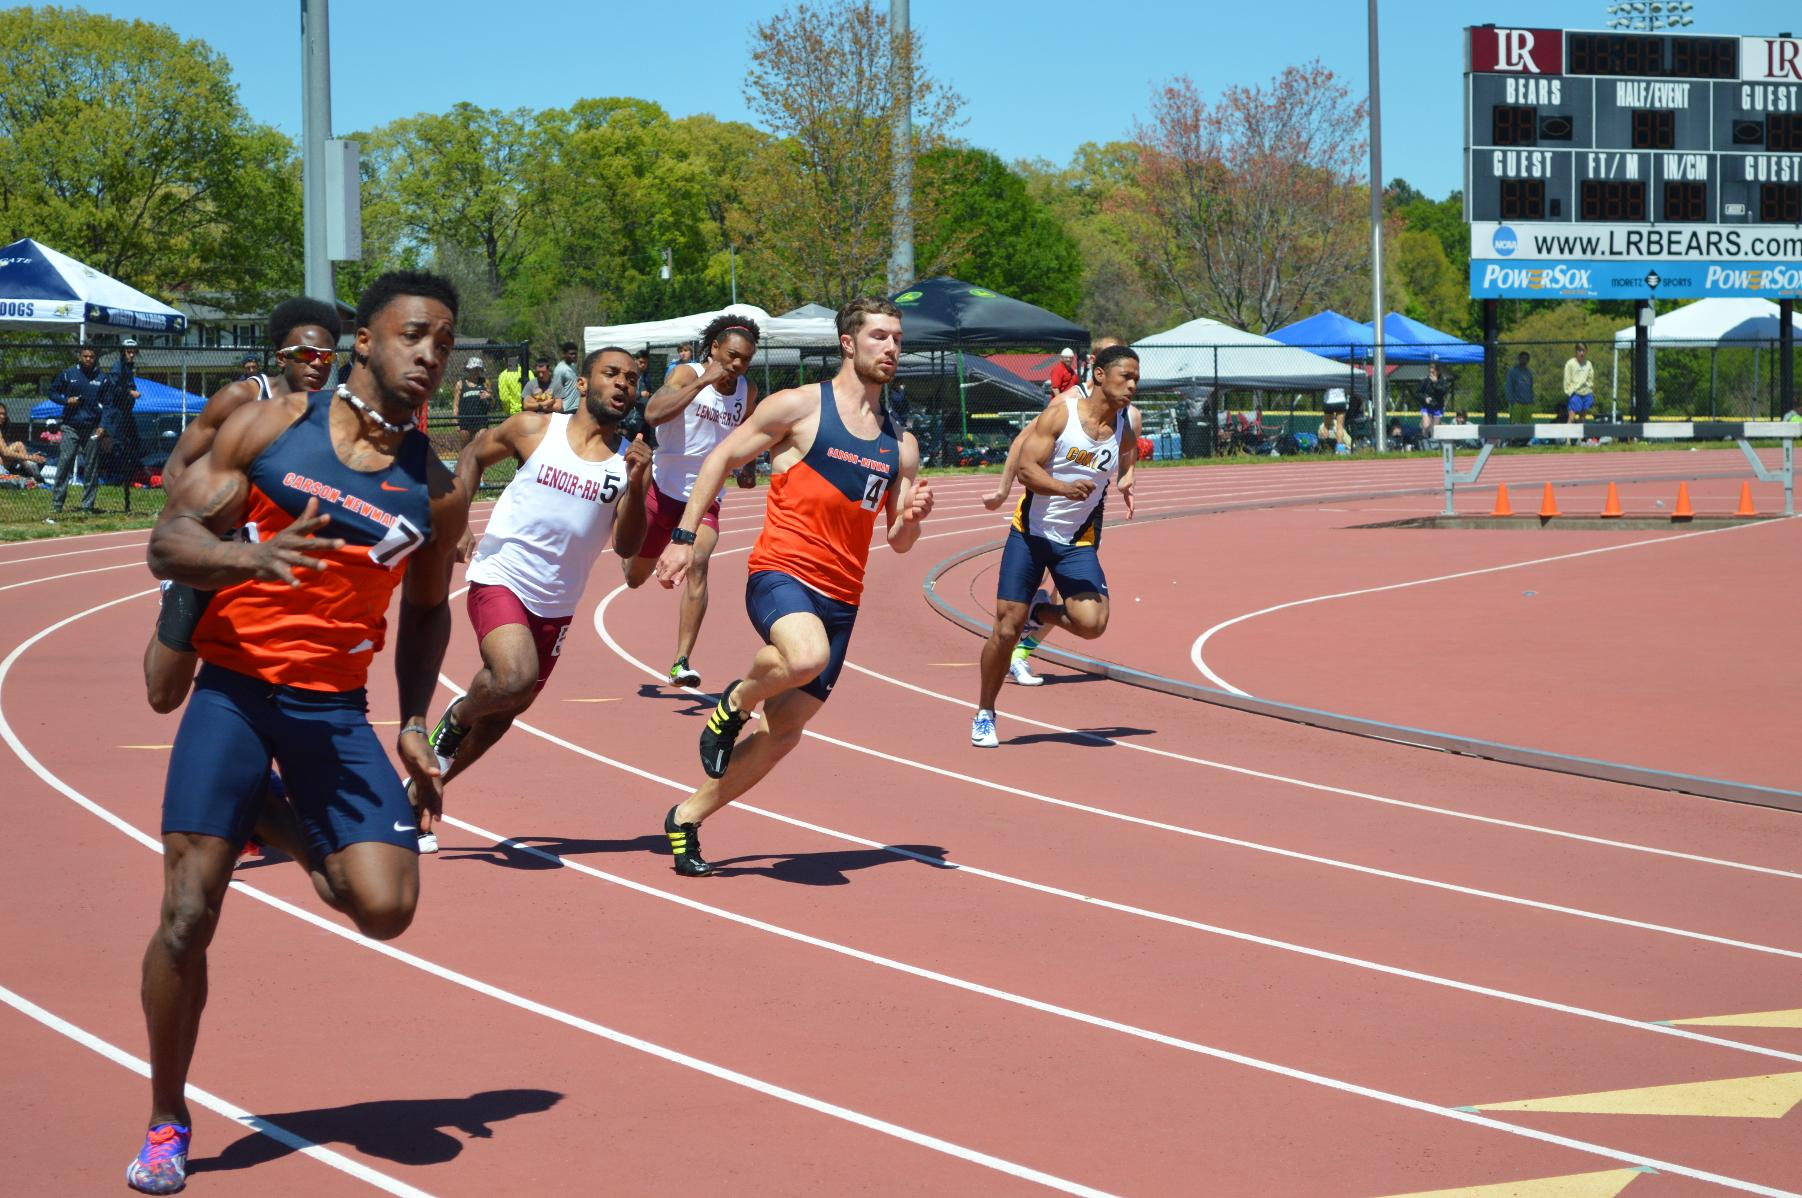 Outdoor Championships next on the docket for Snead and Eagles